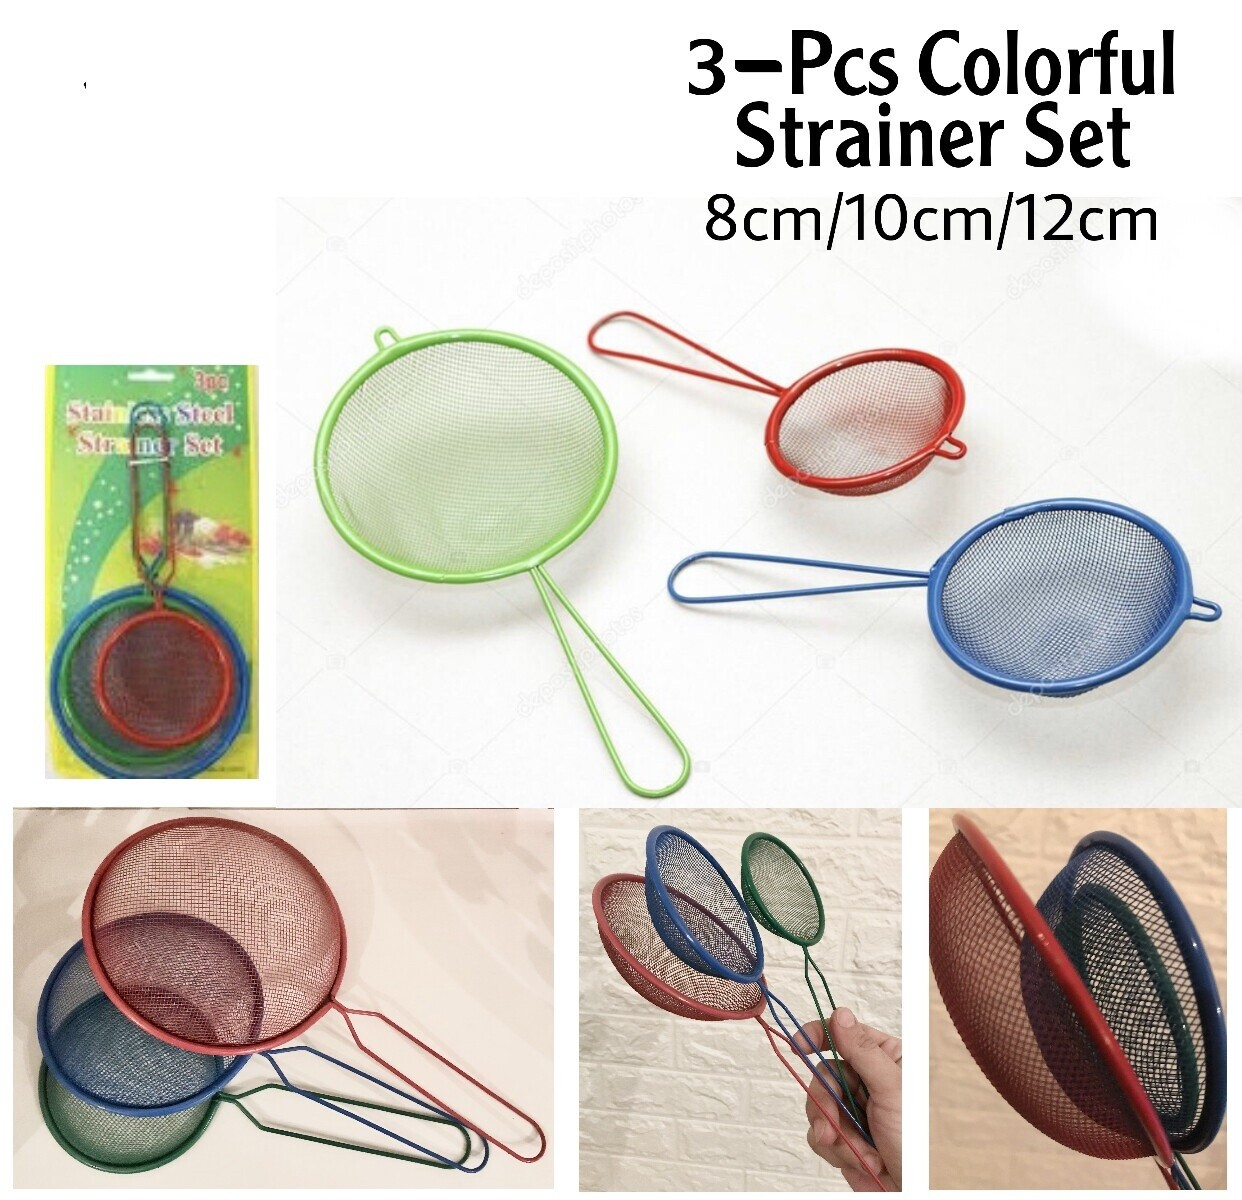 3-Pcs Colorful Strainers